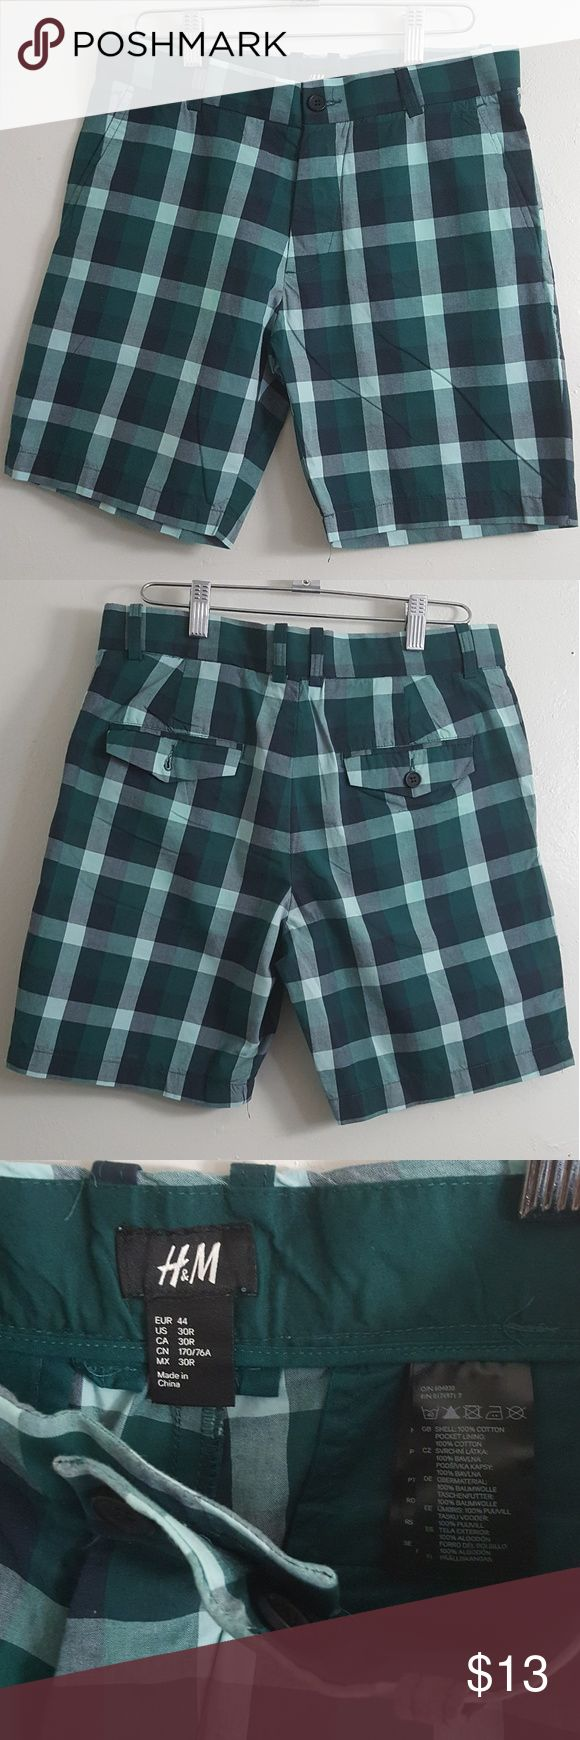 H&M Plaid Shorts H&M Plaid Shorts ||| worn twice in good condition||| H&M Shorts